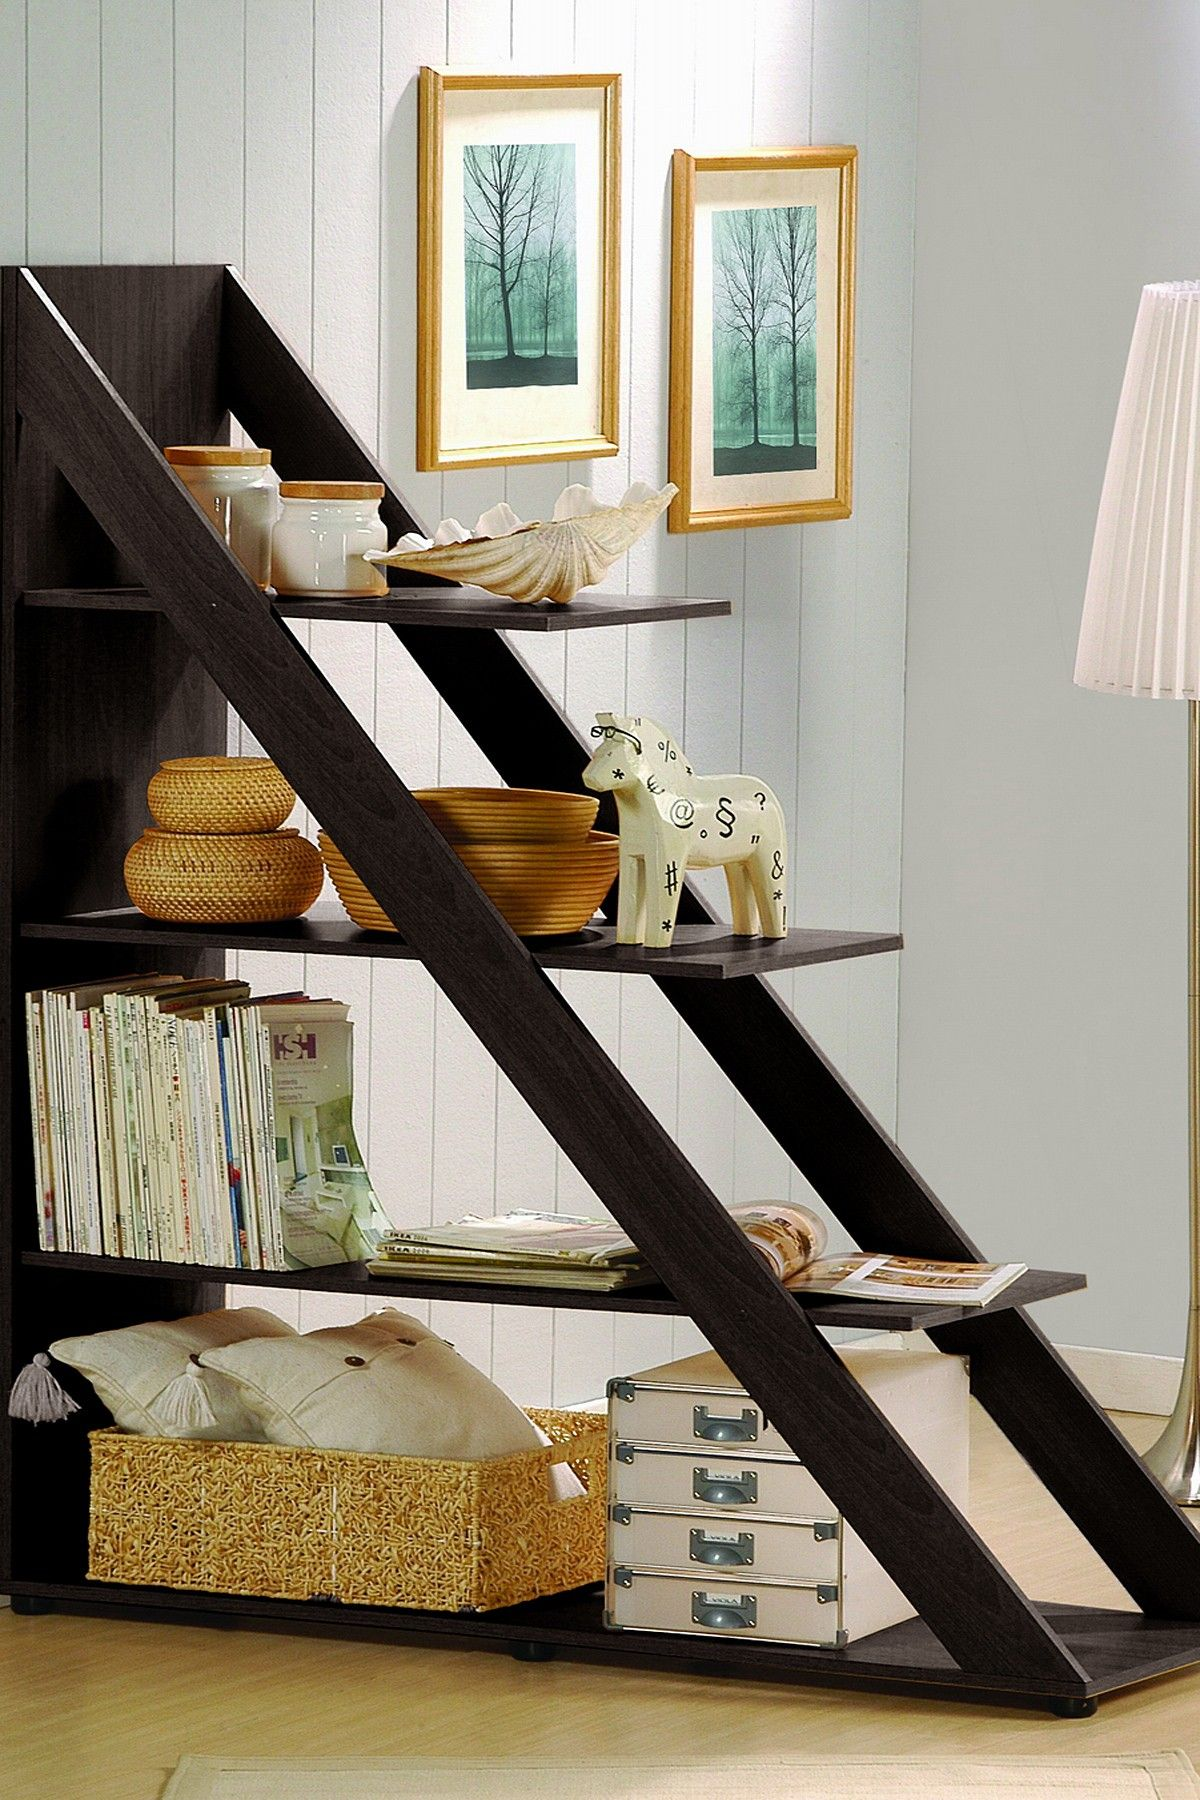 Pin by estelita on para el hogar pinterest modern shelving